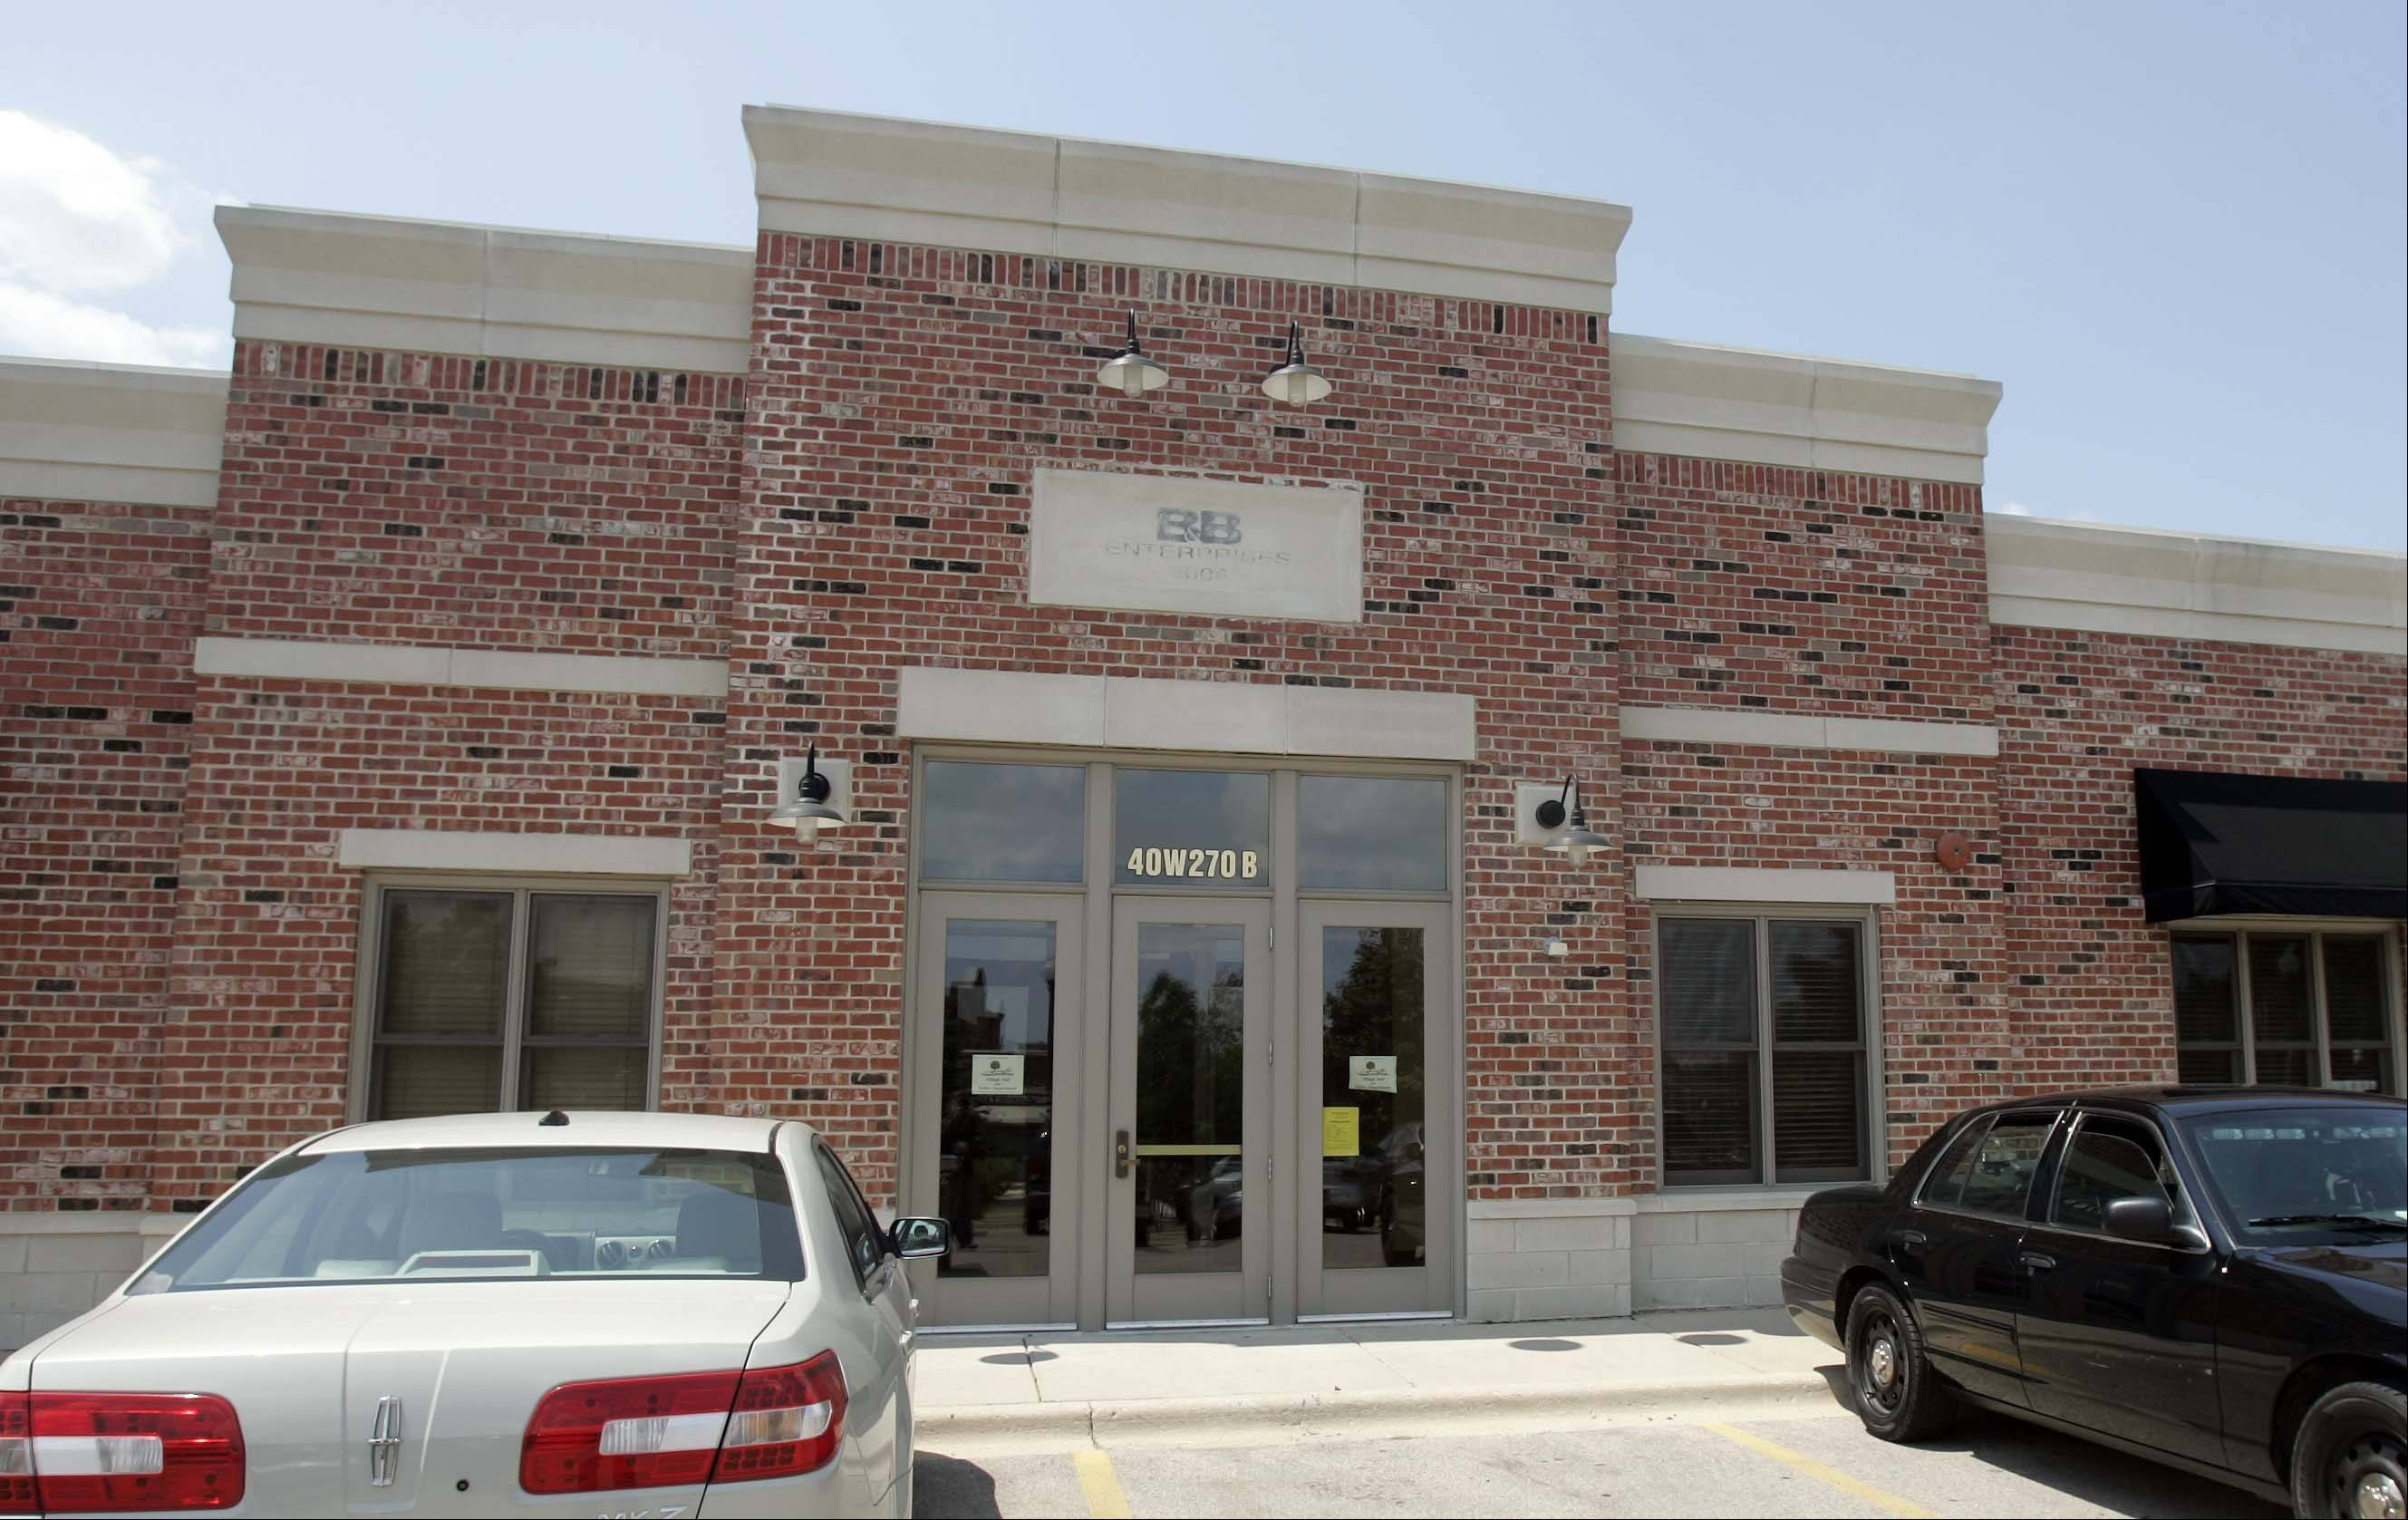 The new Campton Hills Village Hall and police department opened Tuesday at 40W270B La Fox Road.